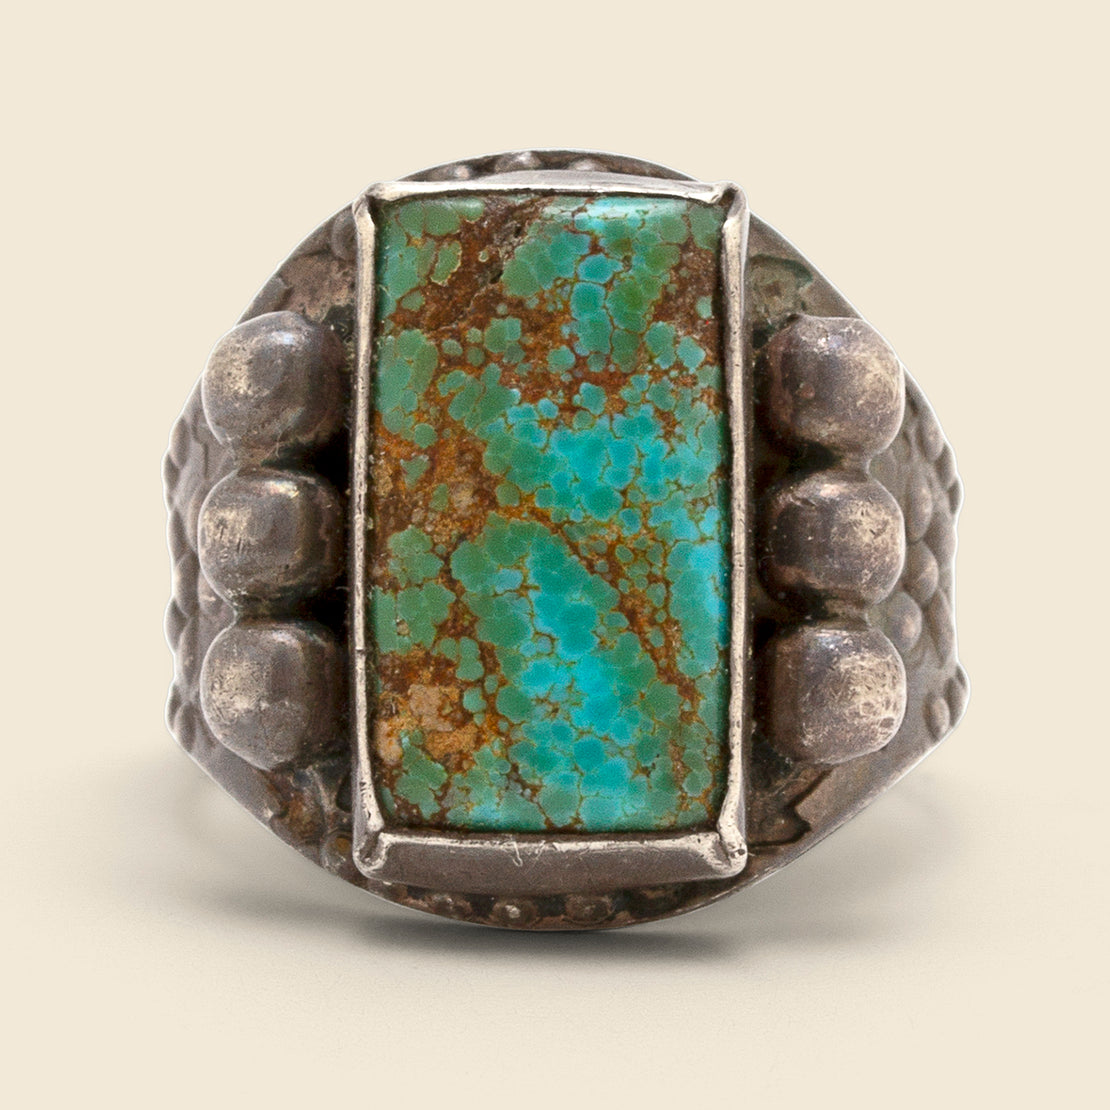 Flowers & Studs Turquoise Ring - Sterling/Turquoise